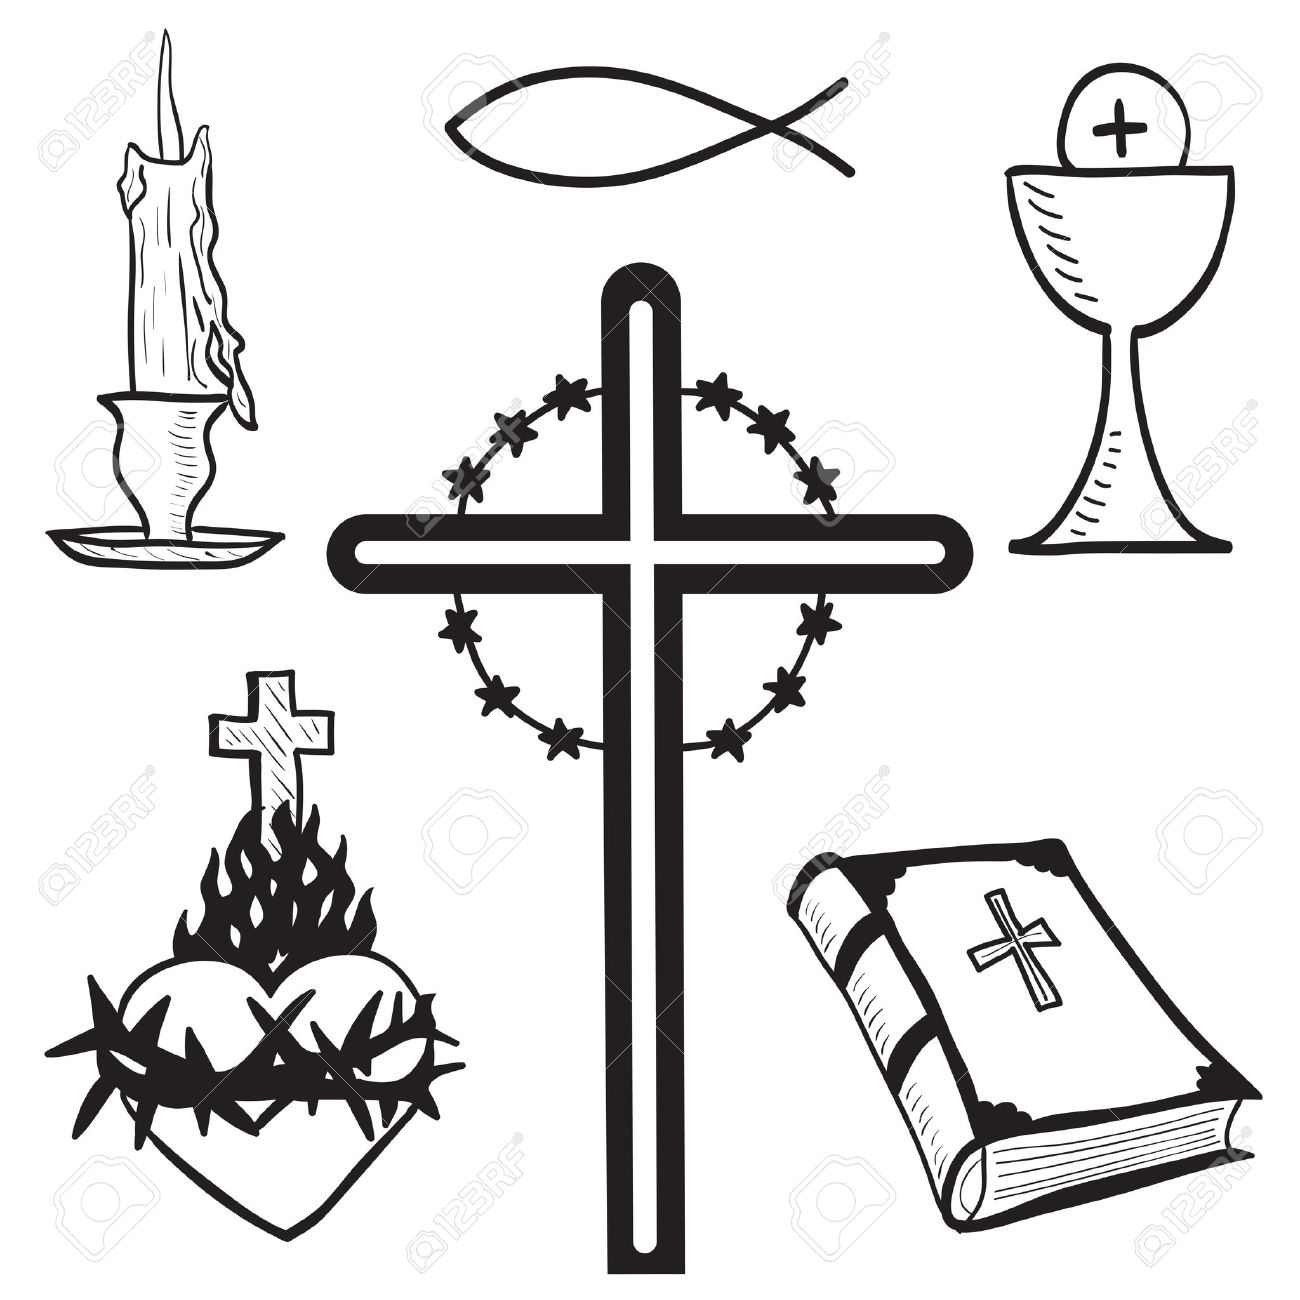 christian hand drawn symbols illustration candle cross bible rh 123rf com Praying Hands Clip Art Christian Graphics and Clip Art